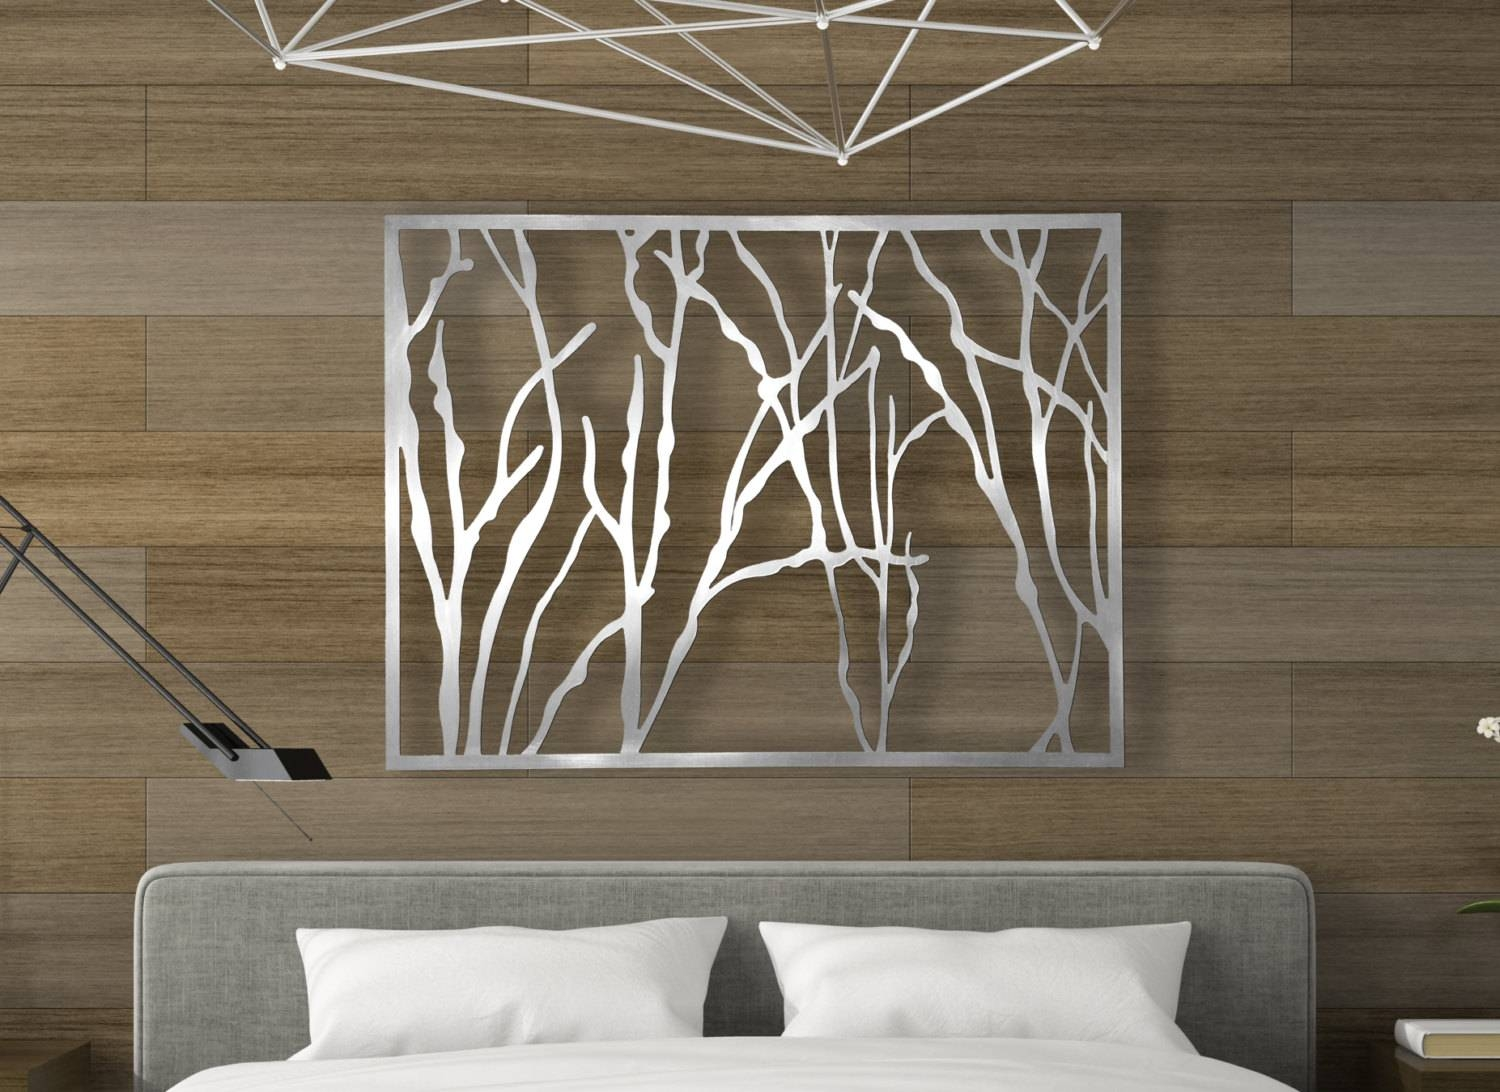 Laser Cut Metal Decorative Wall Art Panel Sculpture For Home For Most Up To Date Metal Wall Art Panels (View 12 of 20)